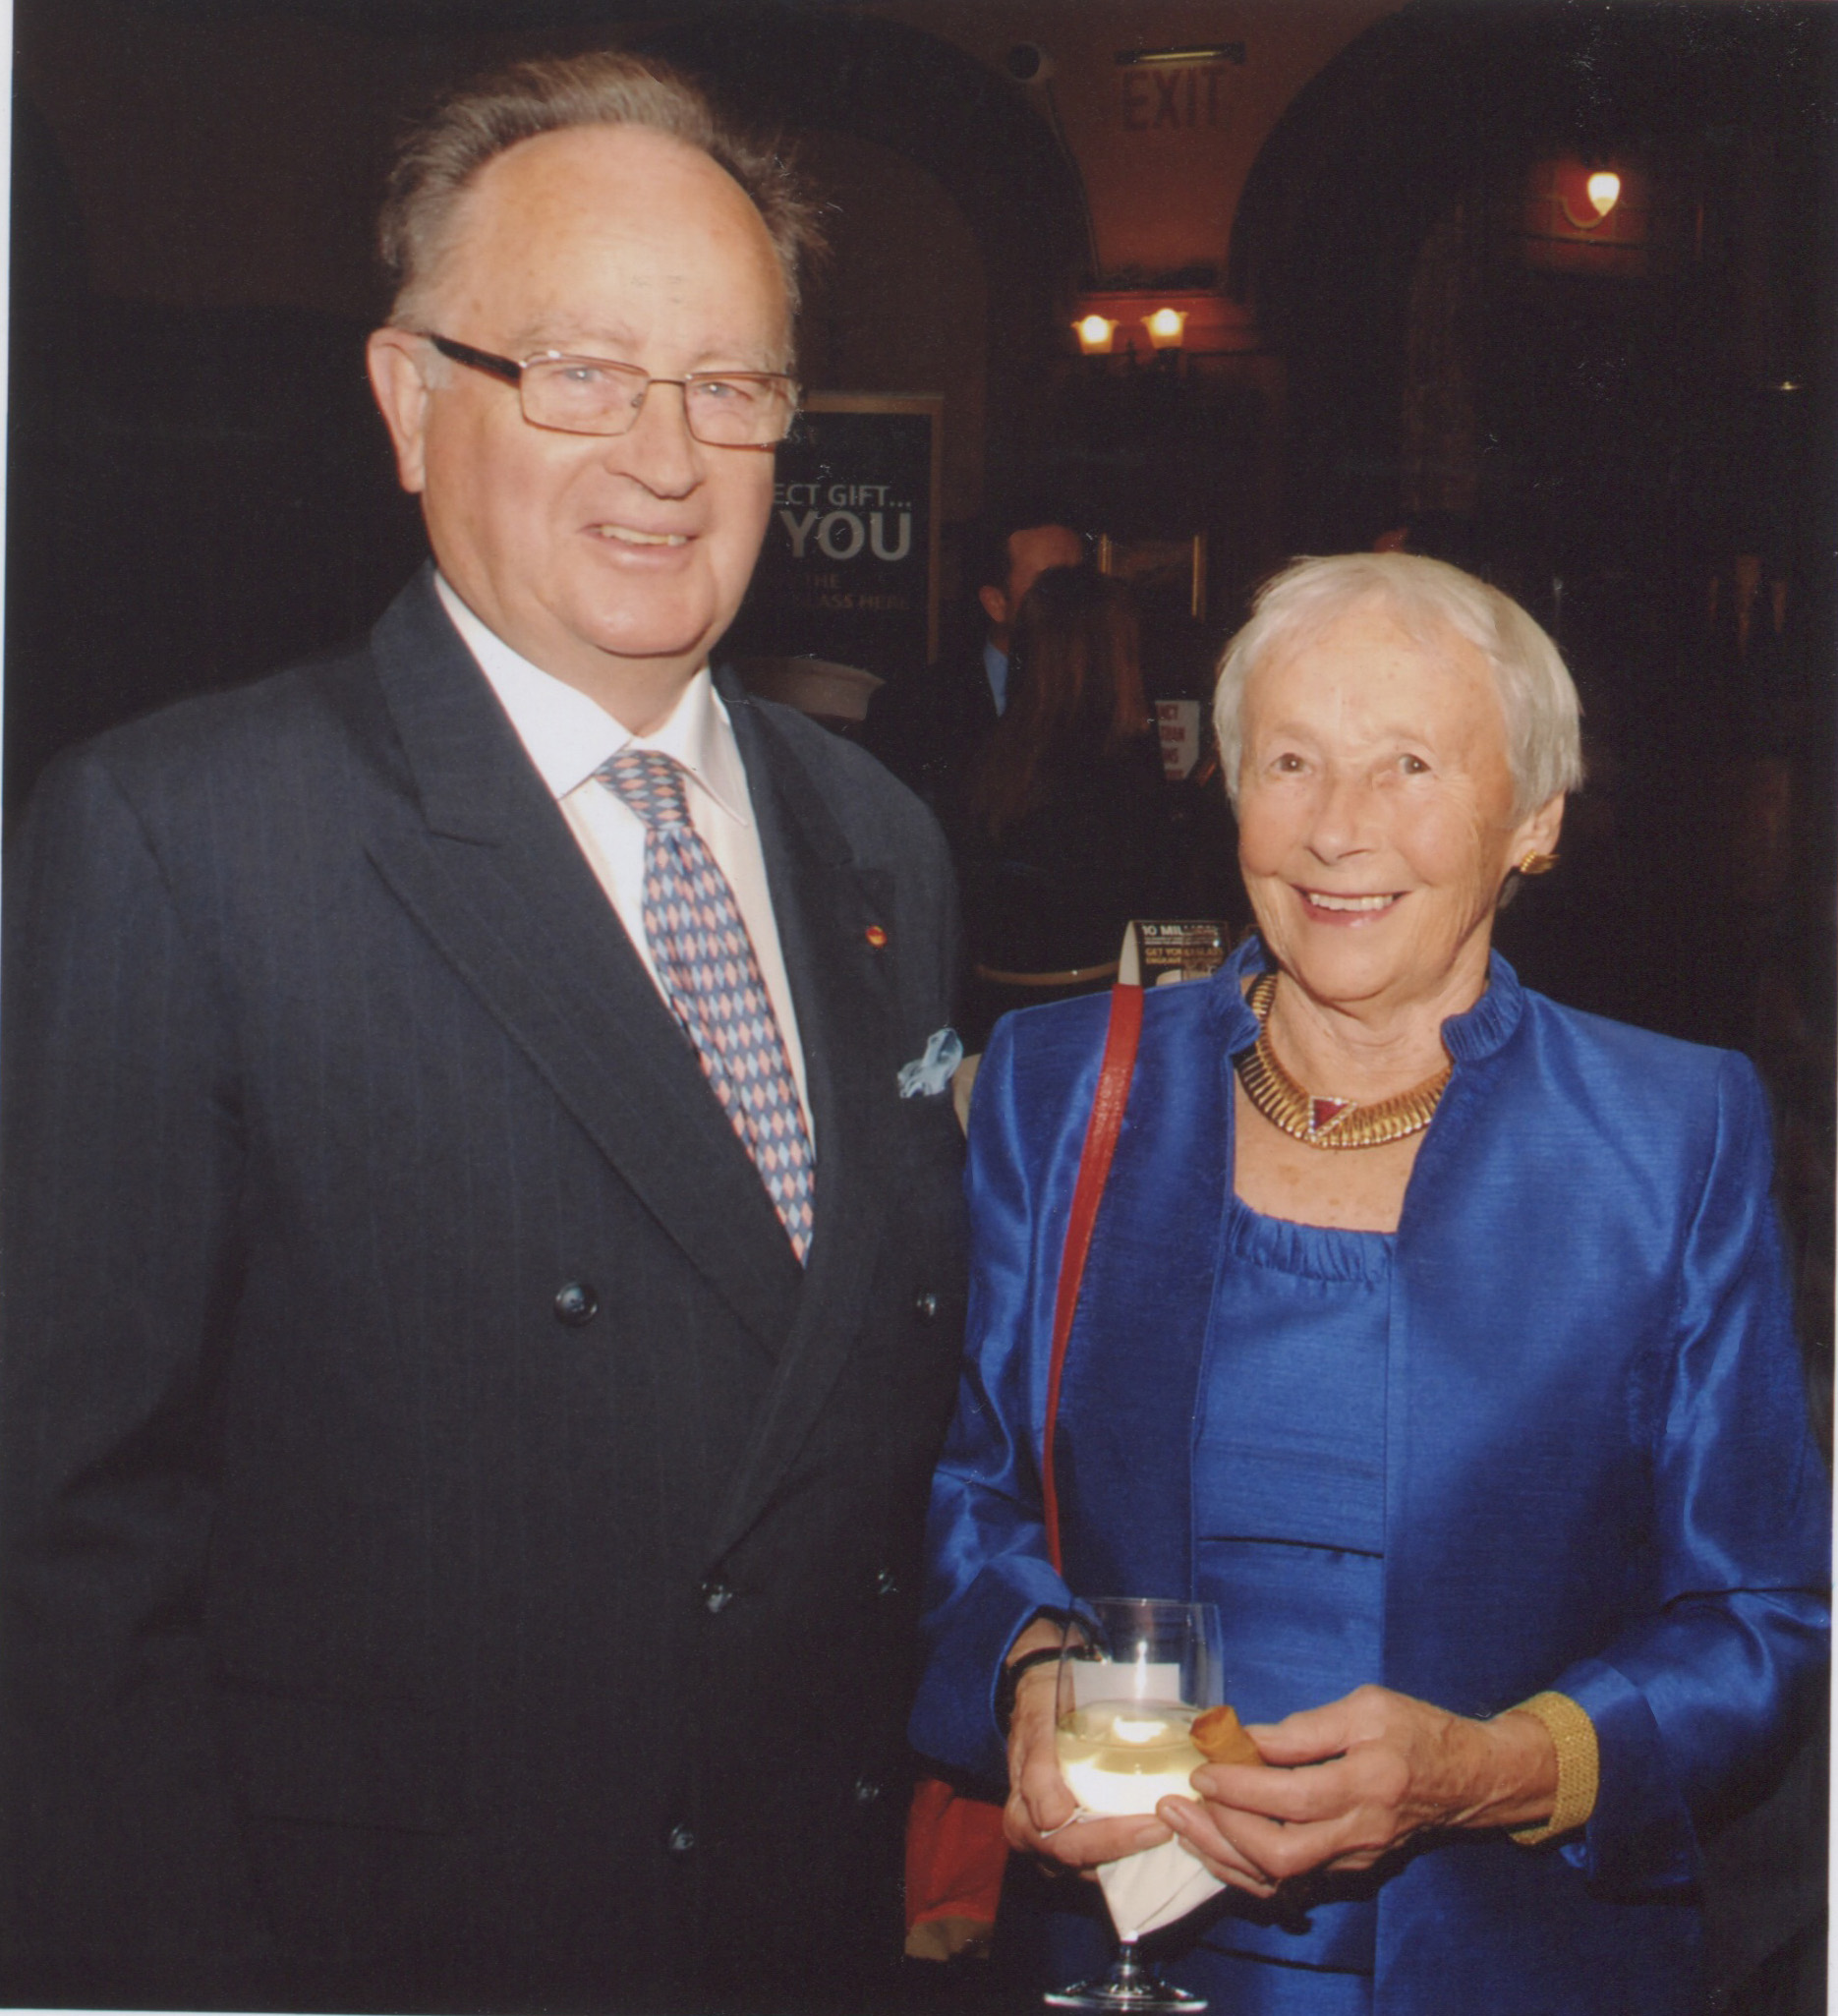 With his wife, Ray. (Photo: Nuala Purcell)